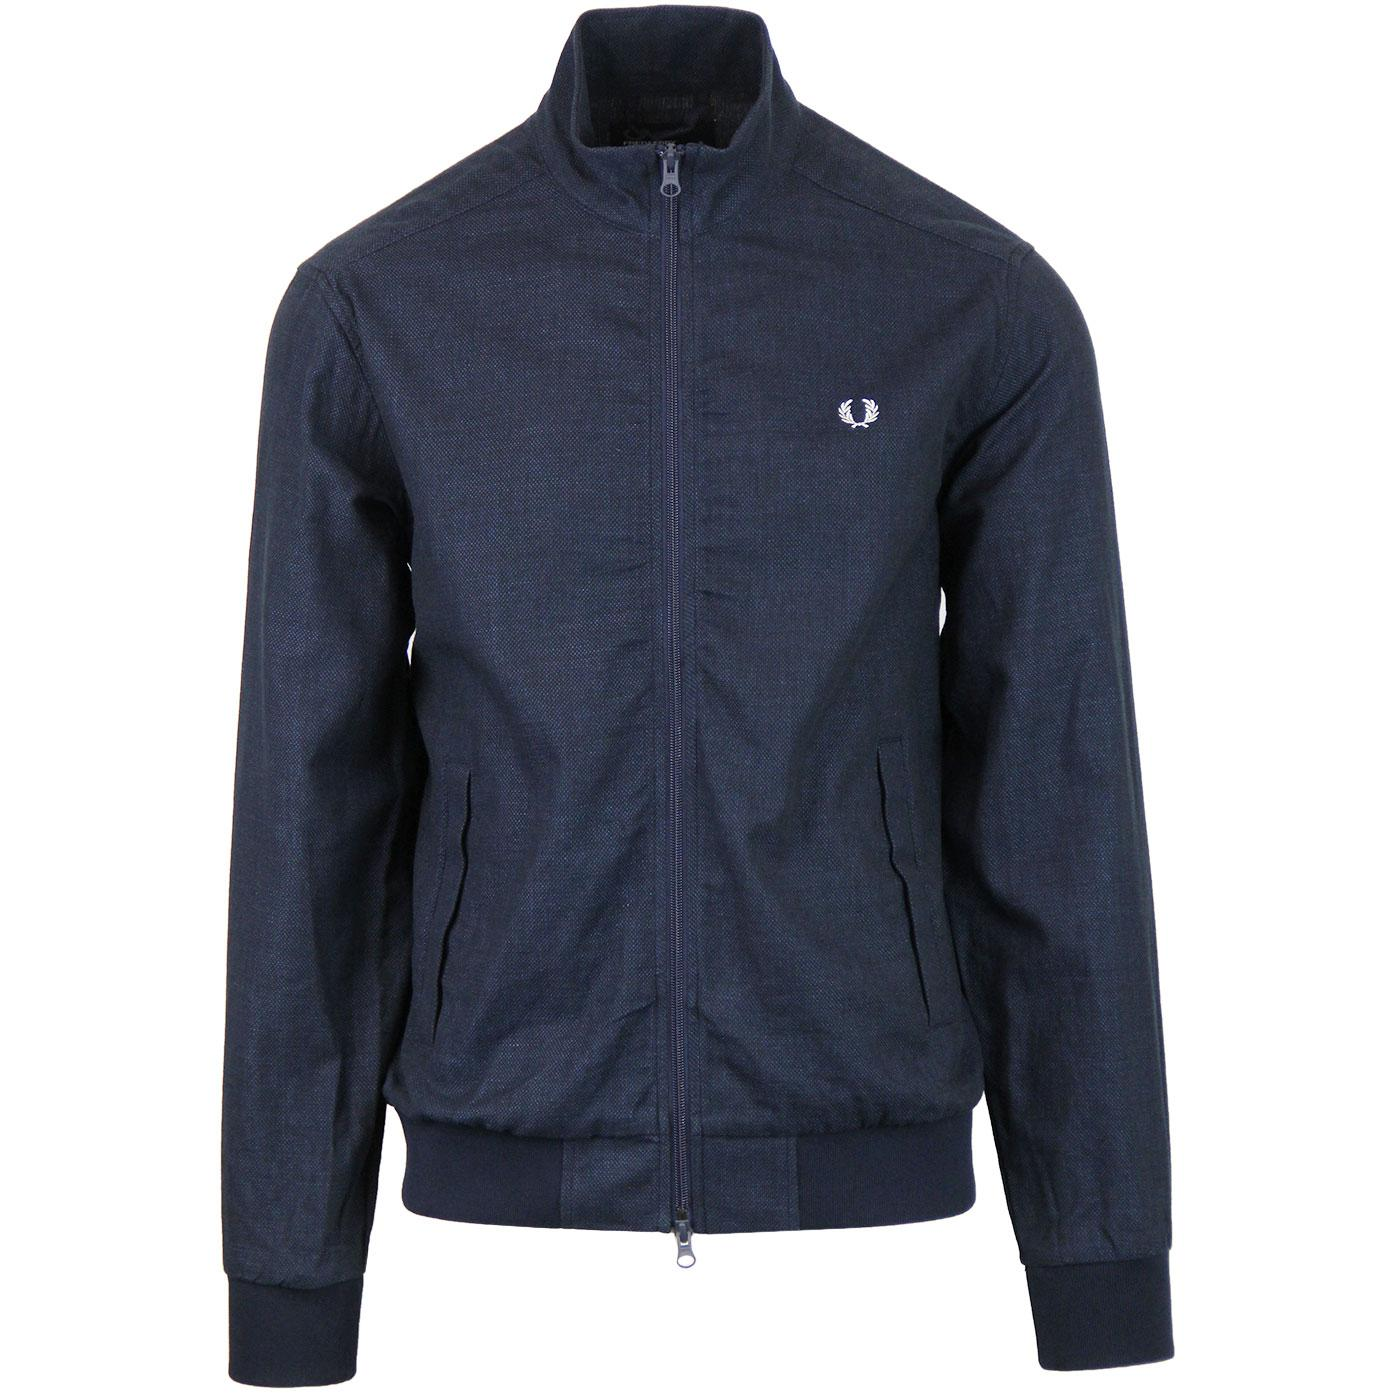 FRED PERRY Men's Retro Woven Textured Track Jacket